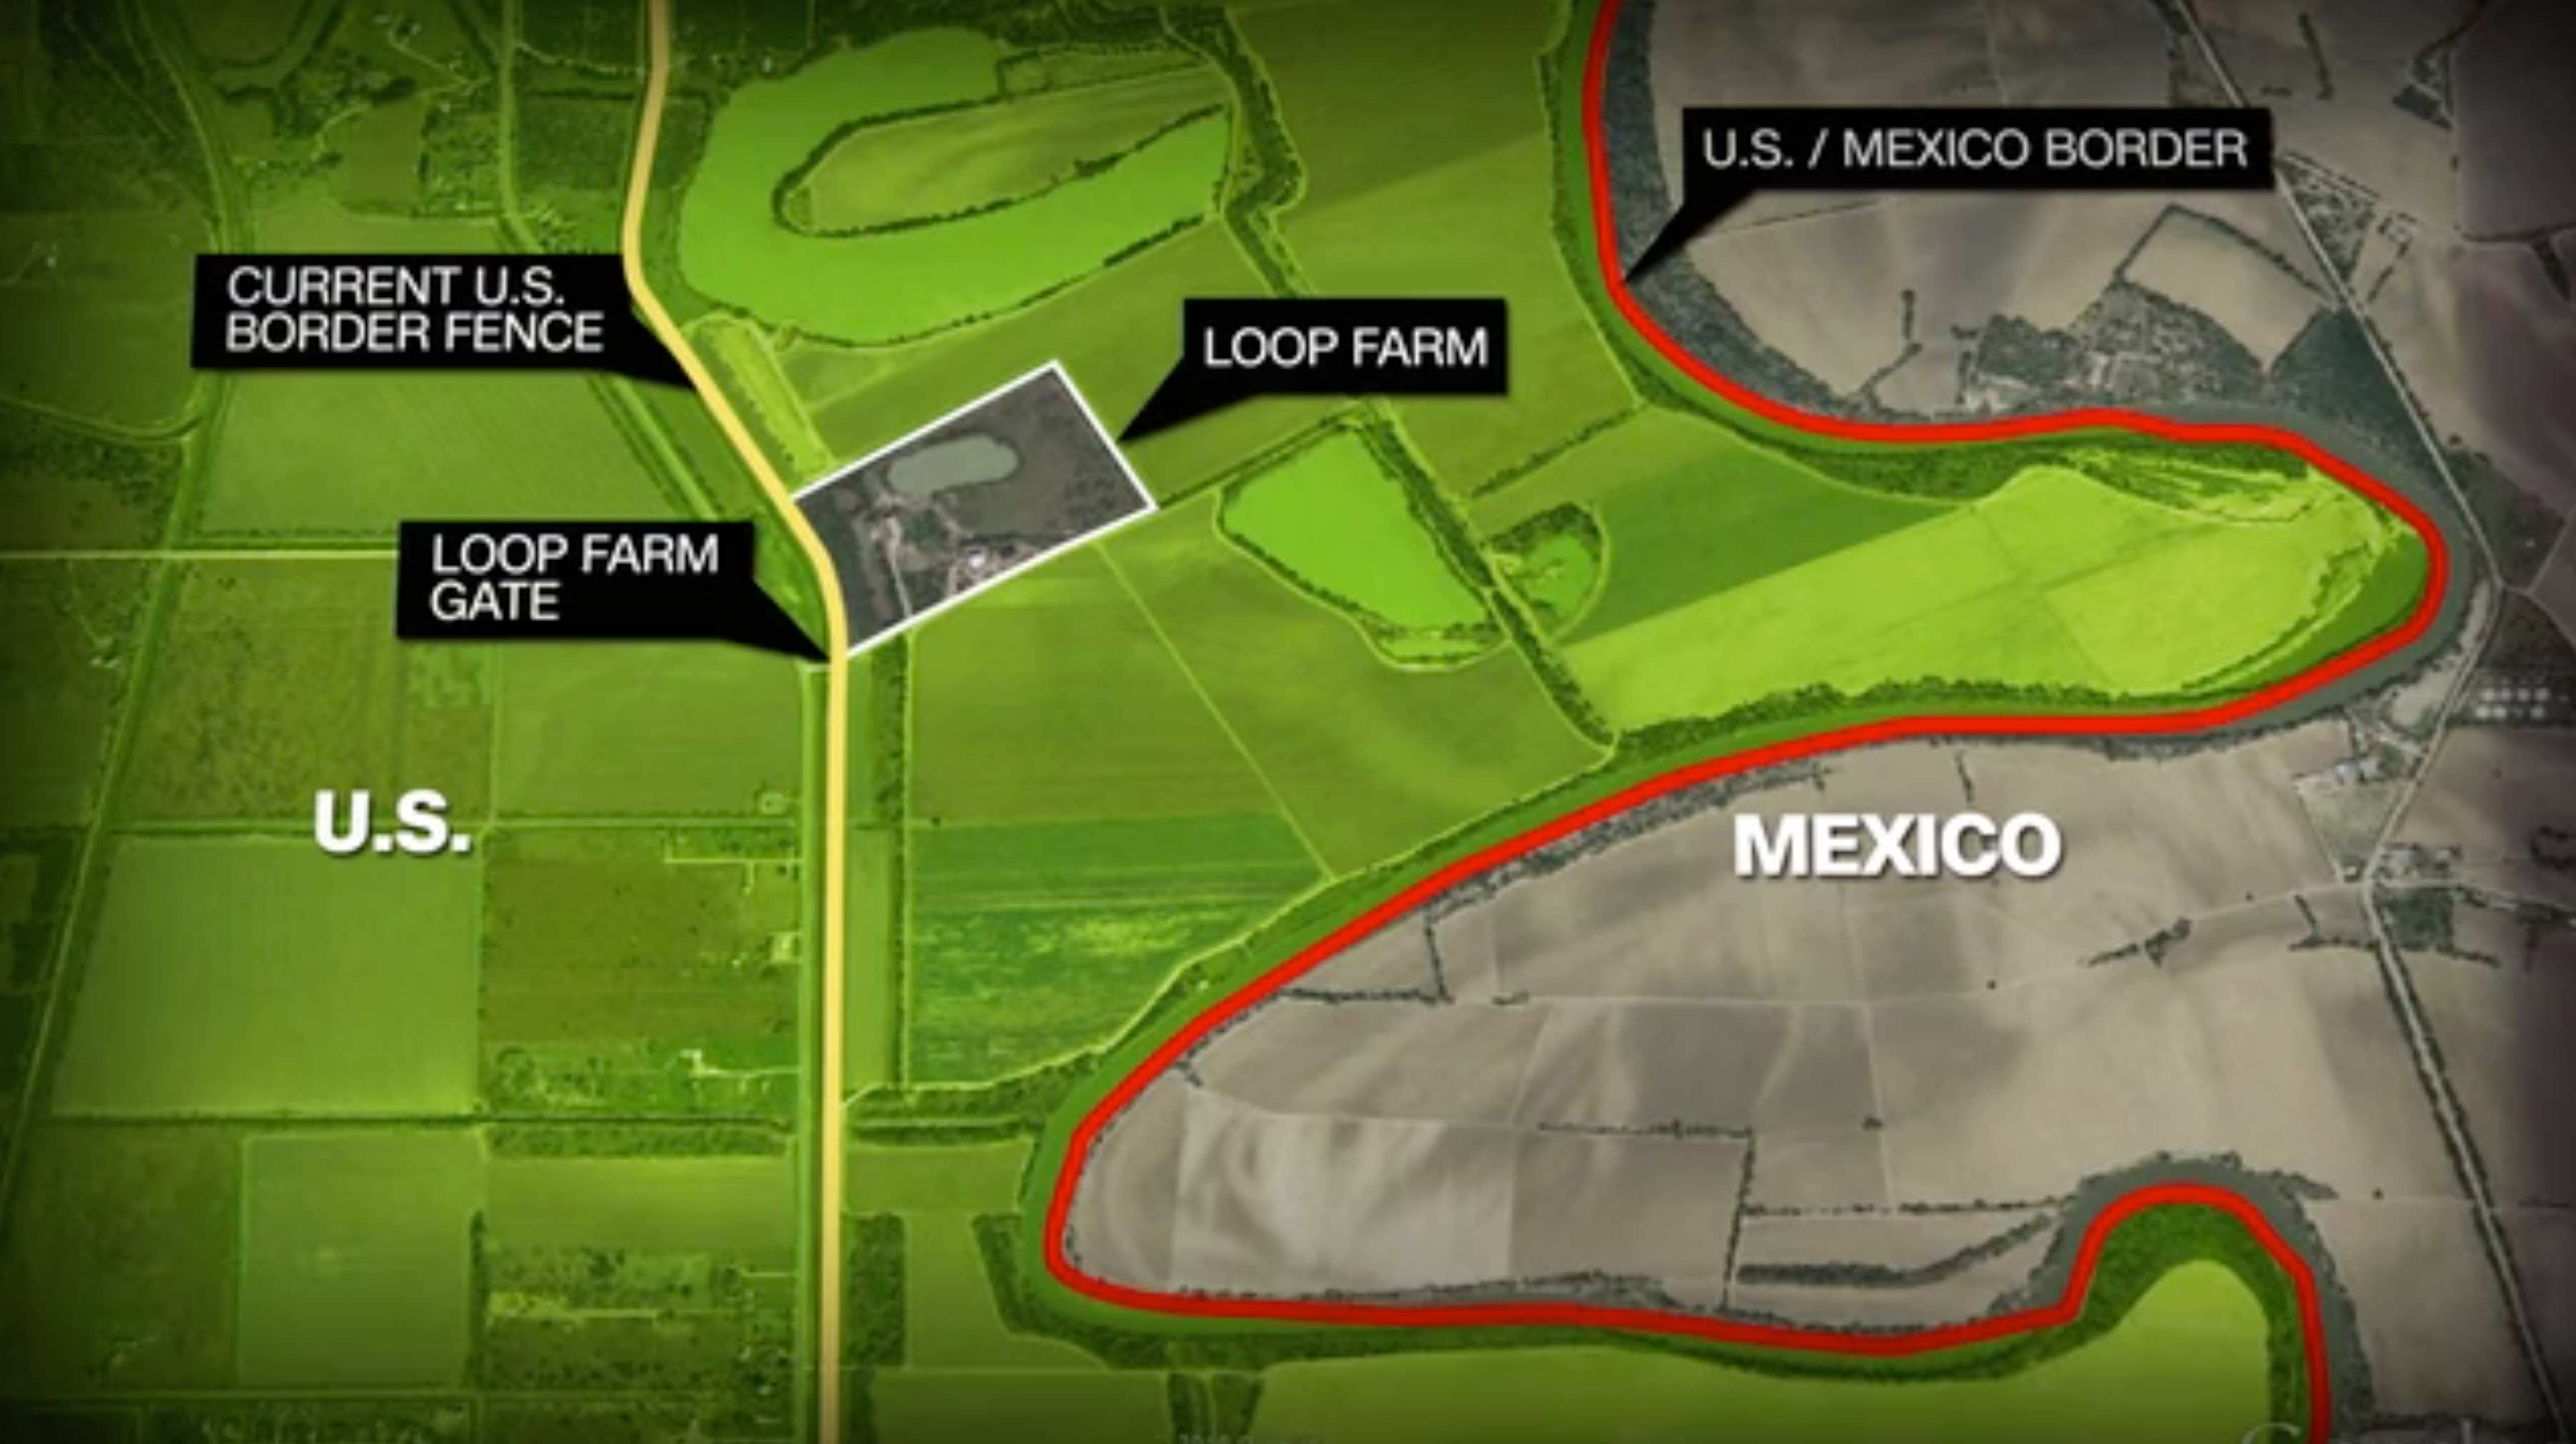 US Family Left On South Side Of Border CNN - Map of us land originally held by mexico